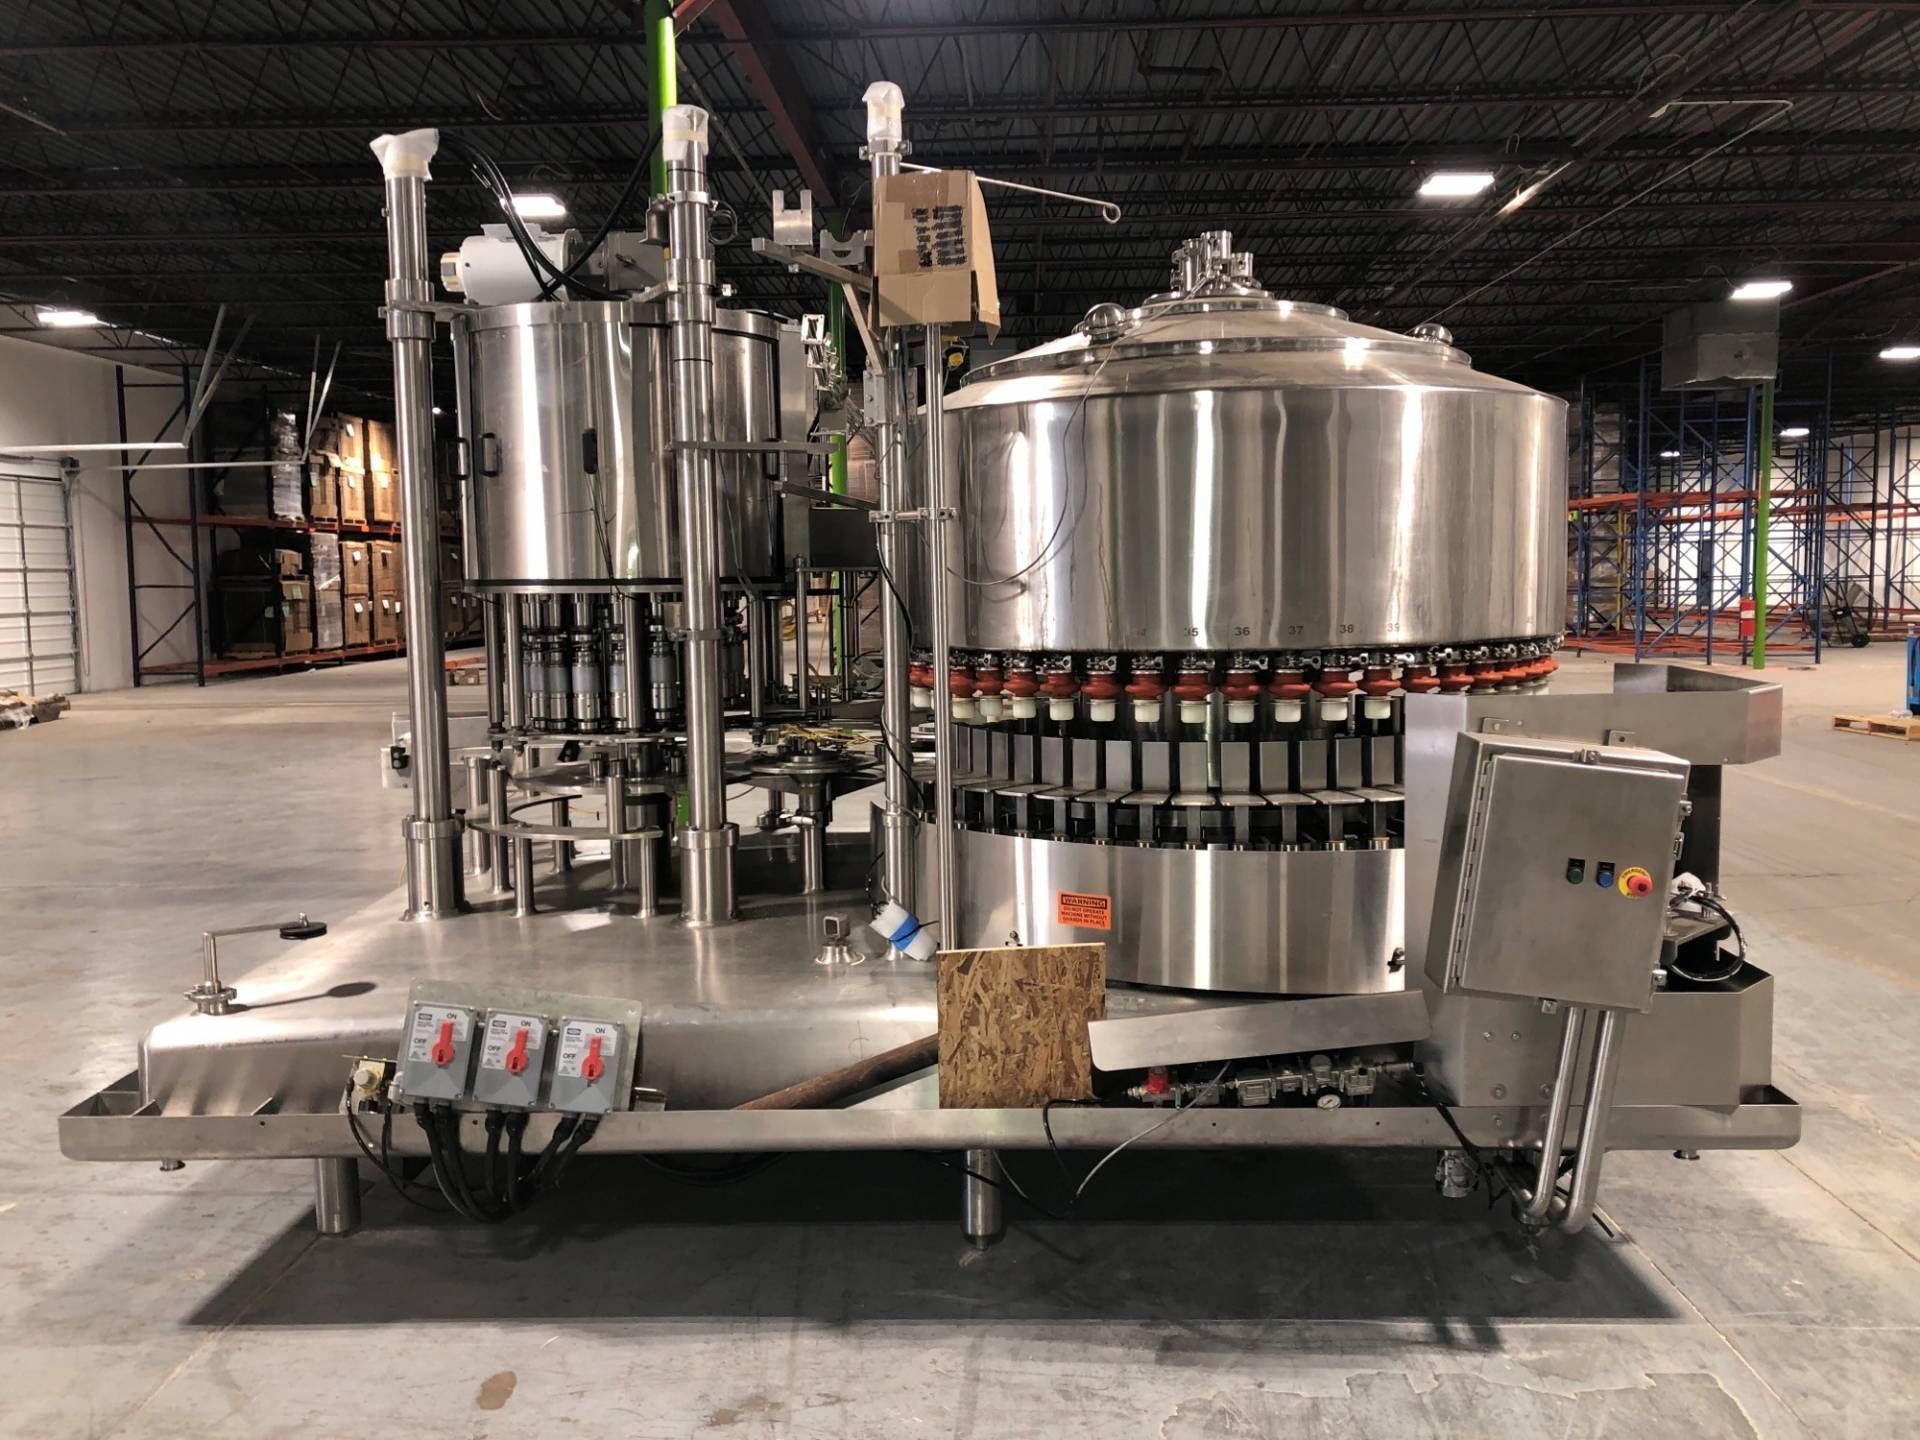 Federal 51 Valve Rotary Filler With 17 Head Cap Station, Juice Filling